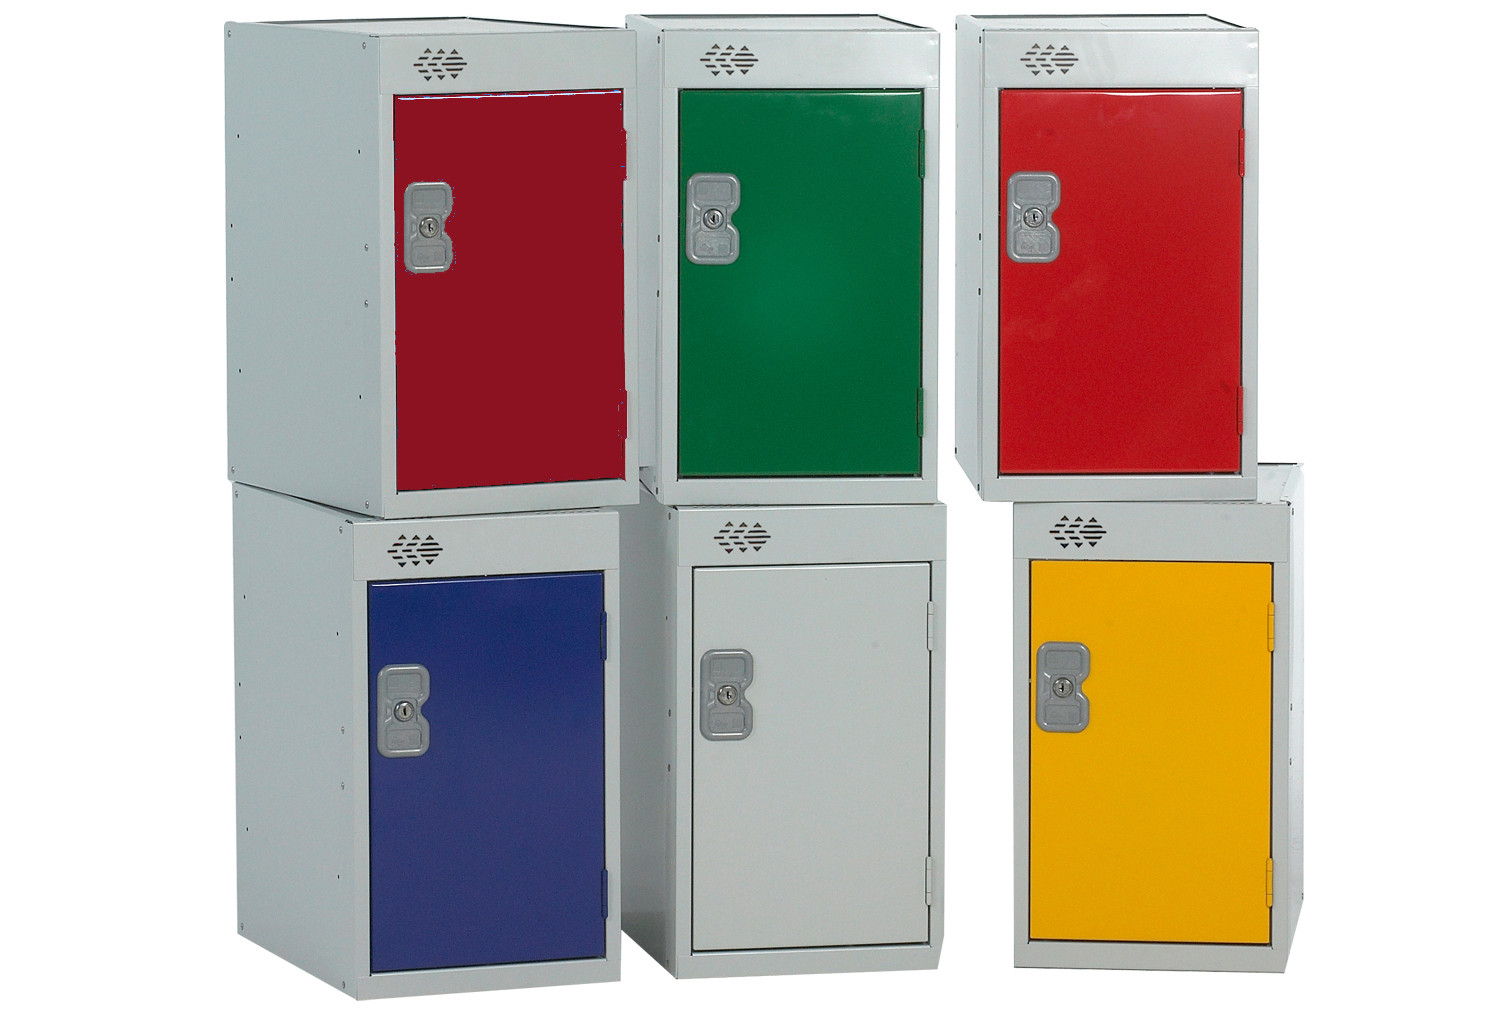 Quarto lockers